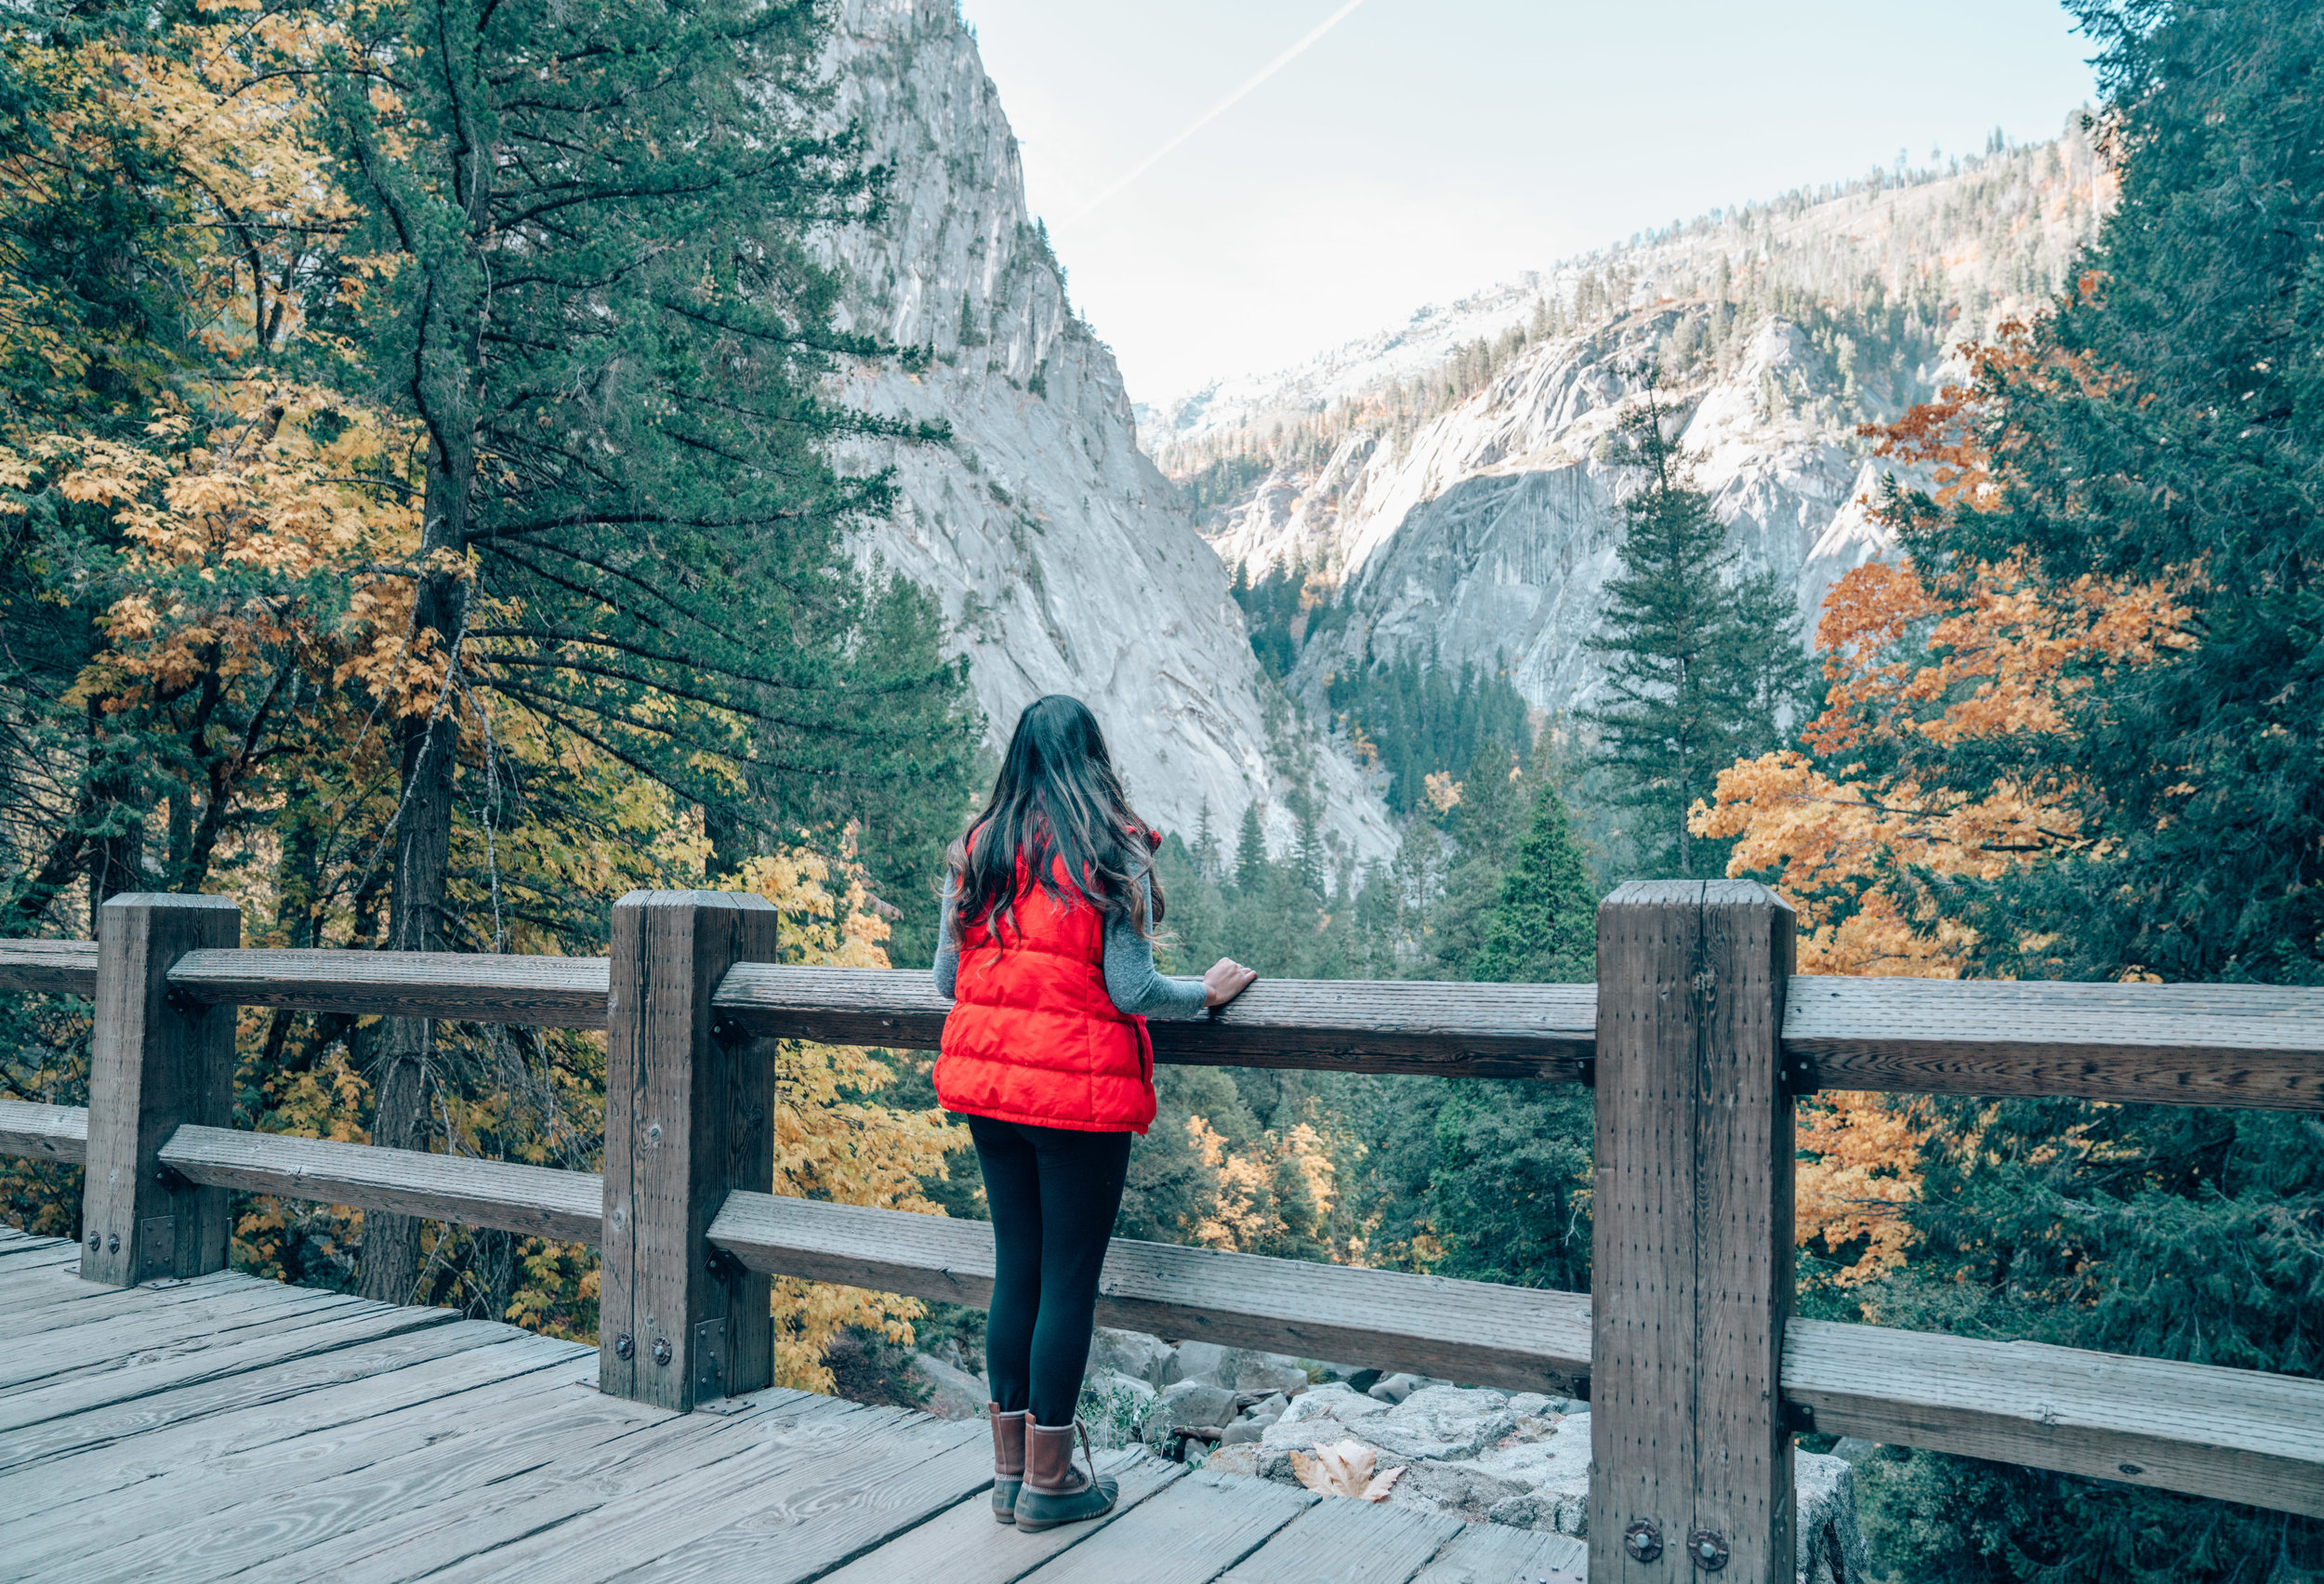 Yosemite National Park in the Fall